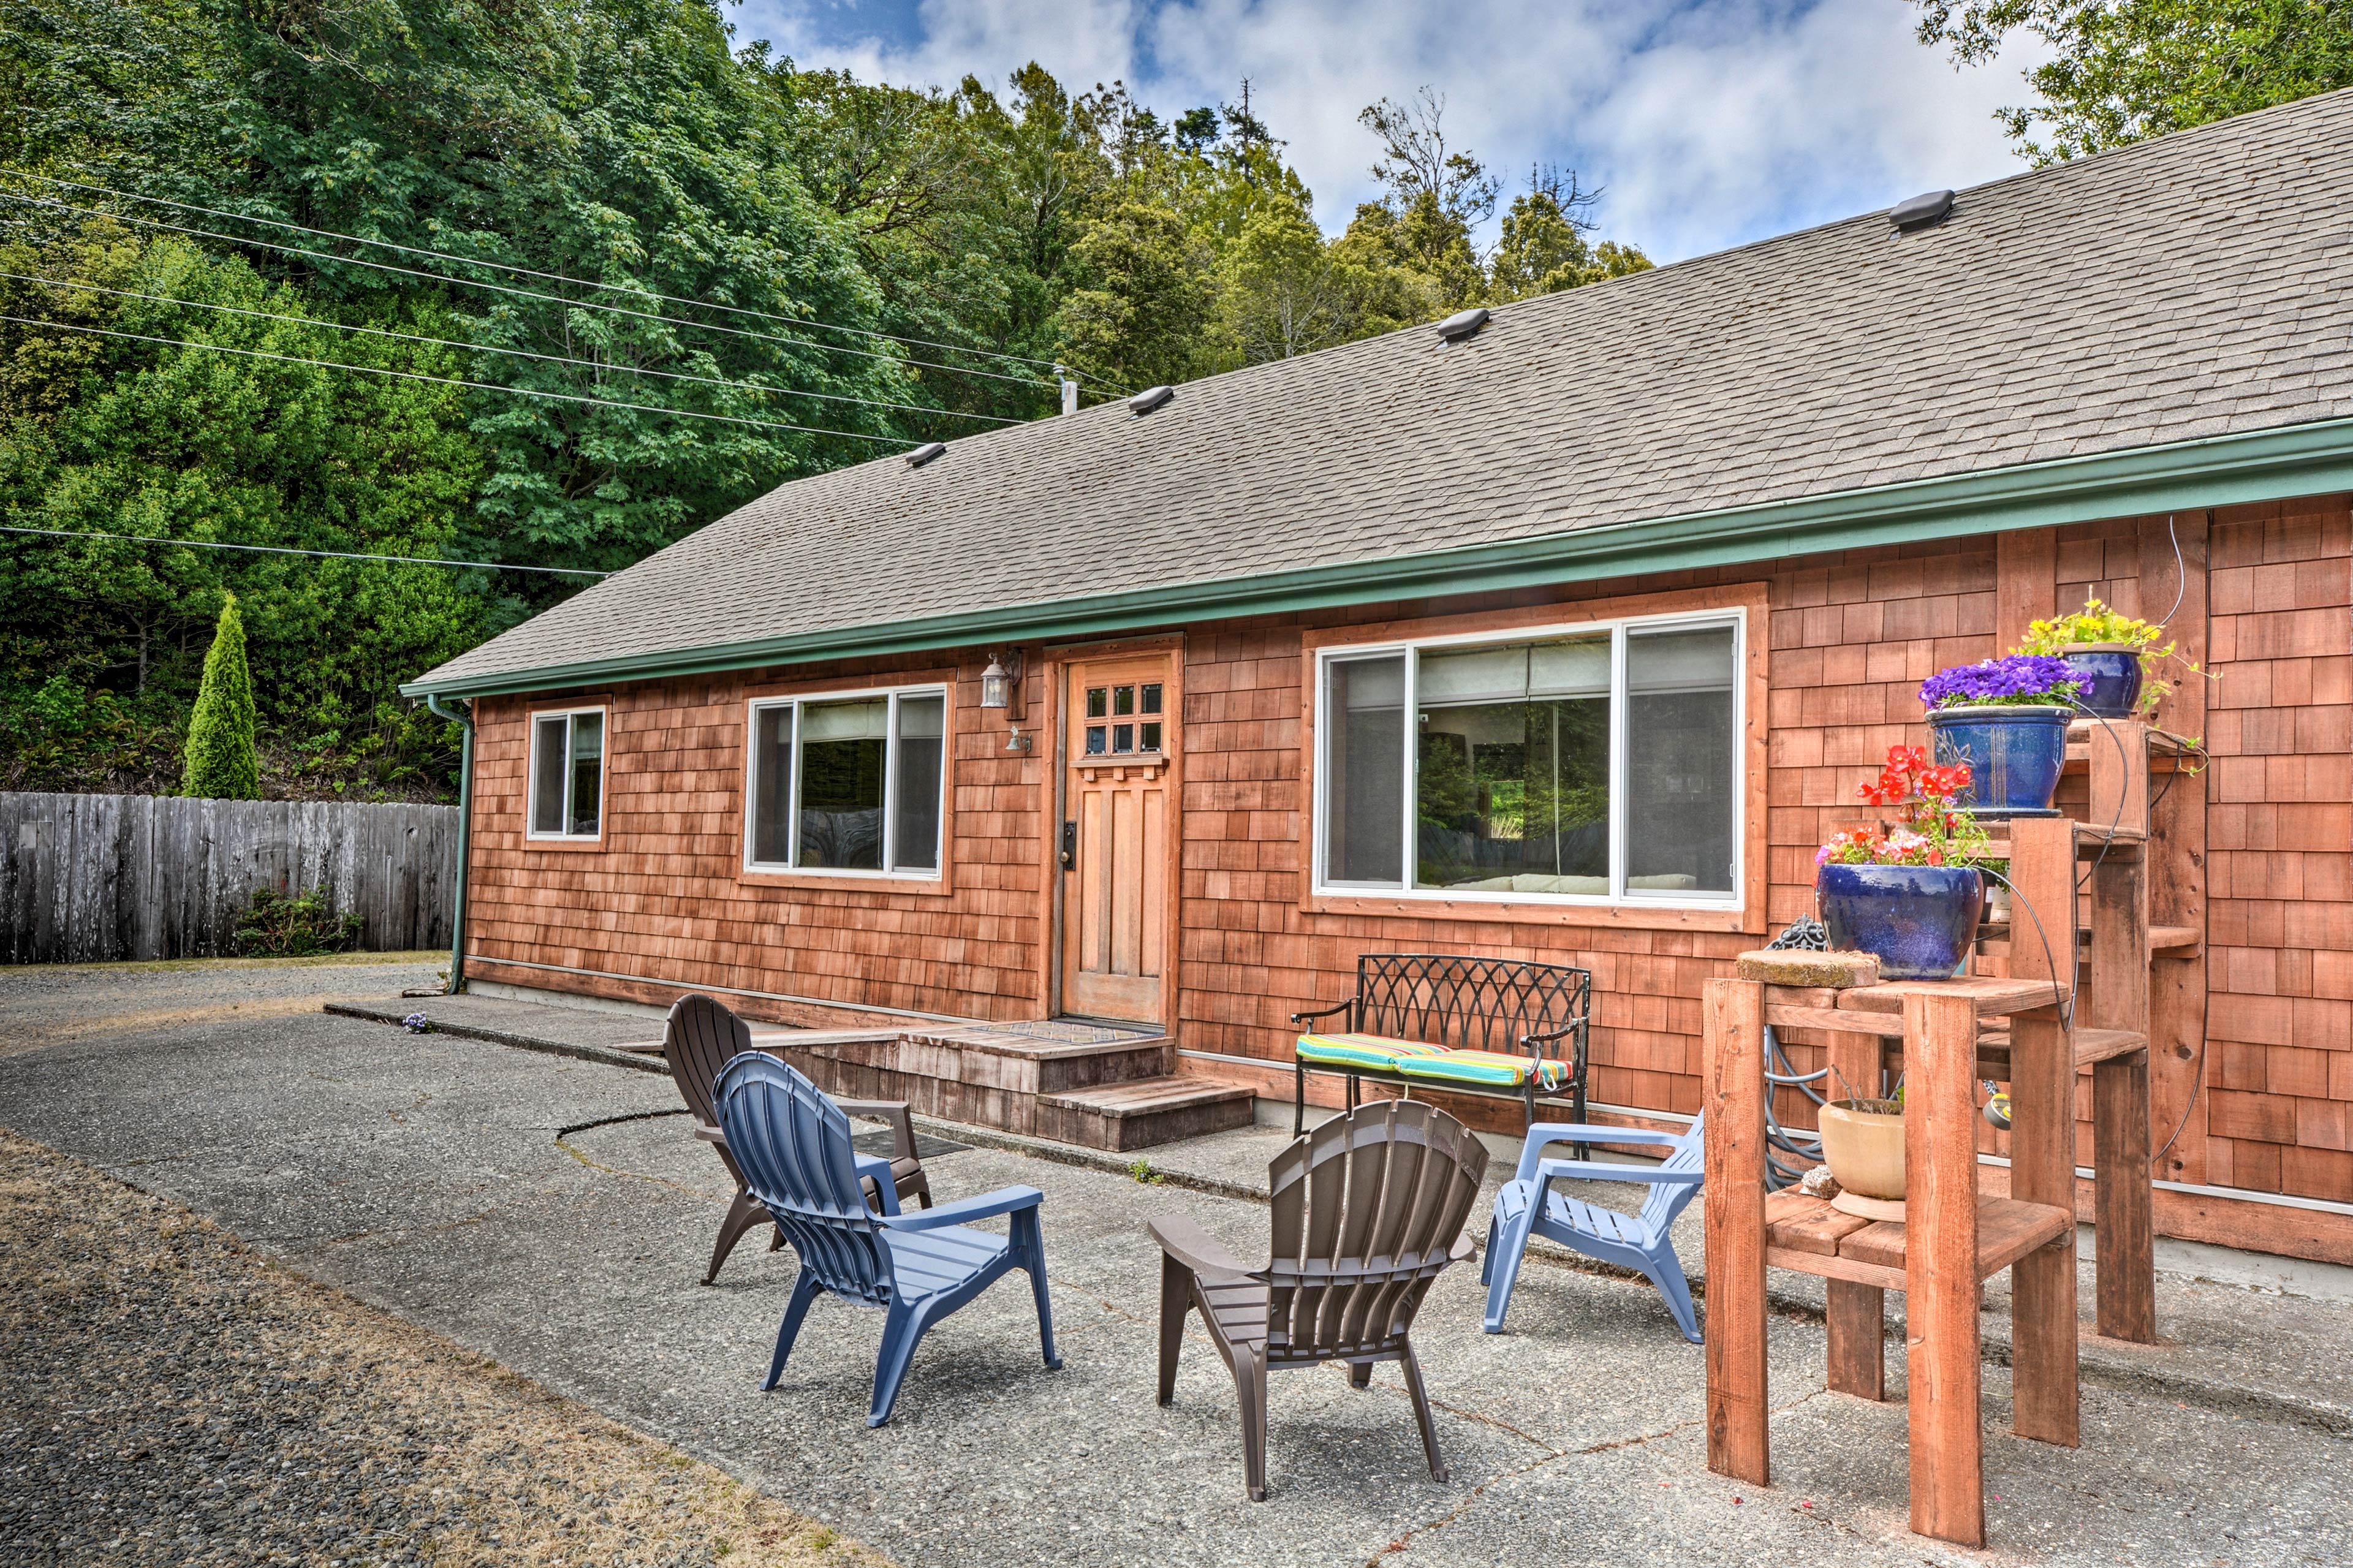 Sit back and unwind at this 2-bedroom, 1-bath apartment in Gold Beach!